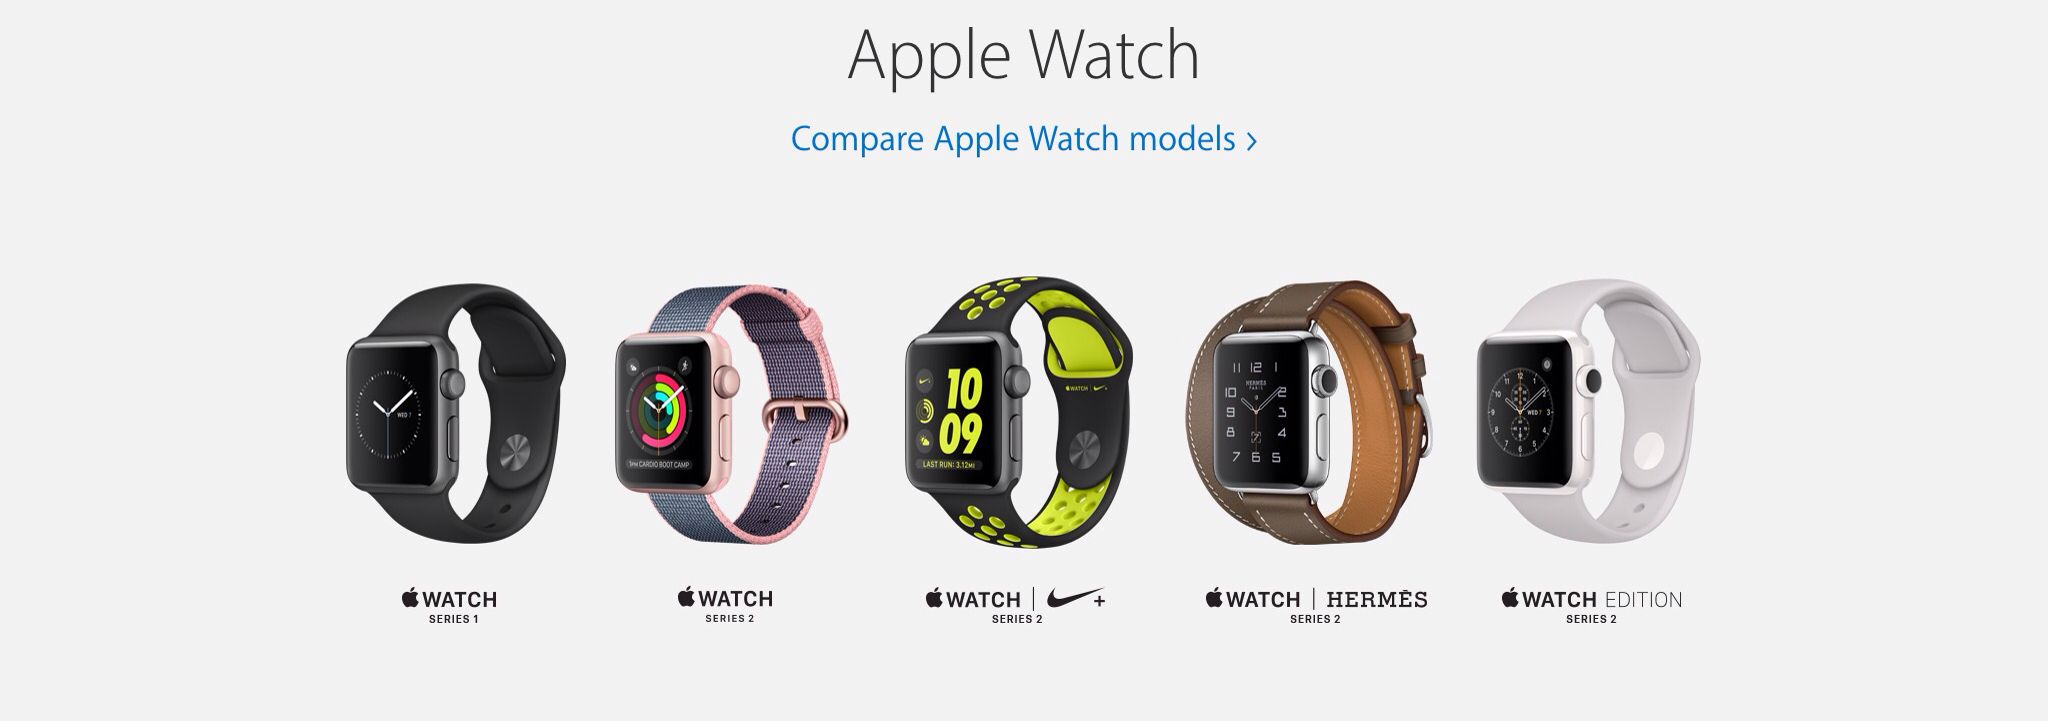 These are all currently available models of Apple Watch